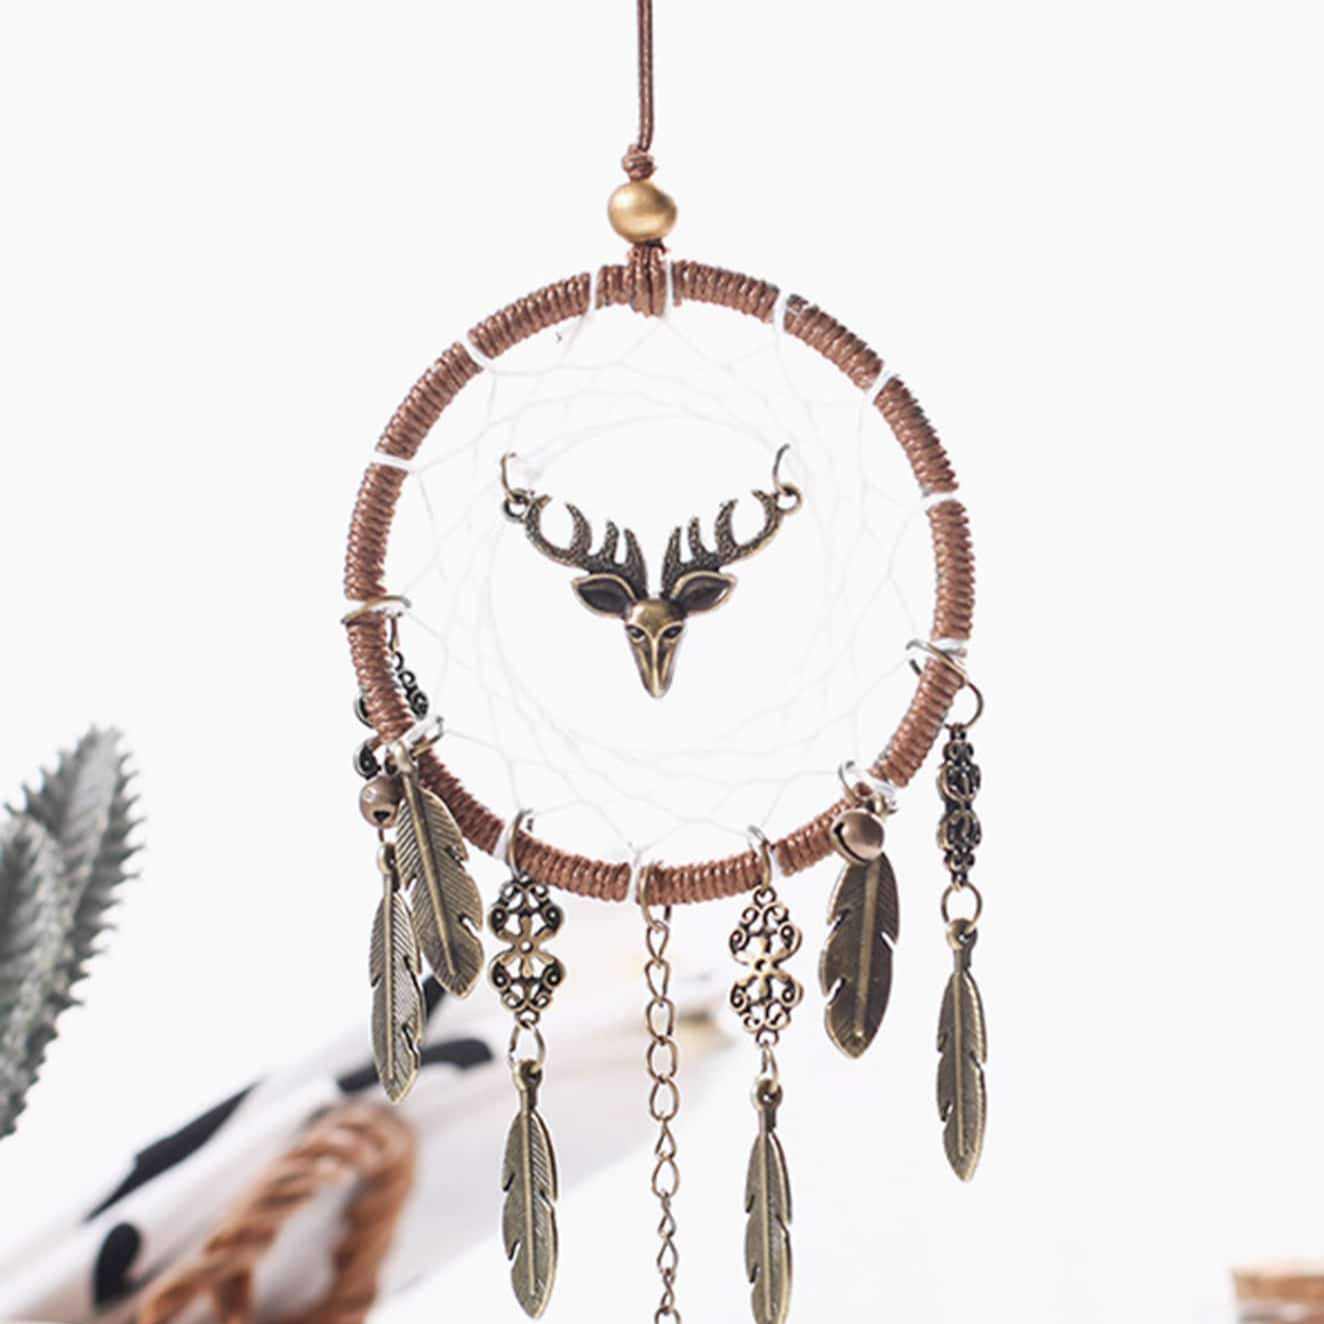 Metal Feather Pendant Dream Catcher